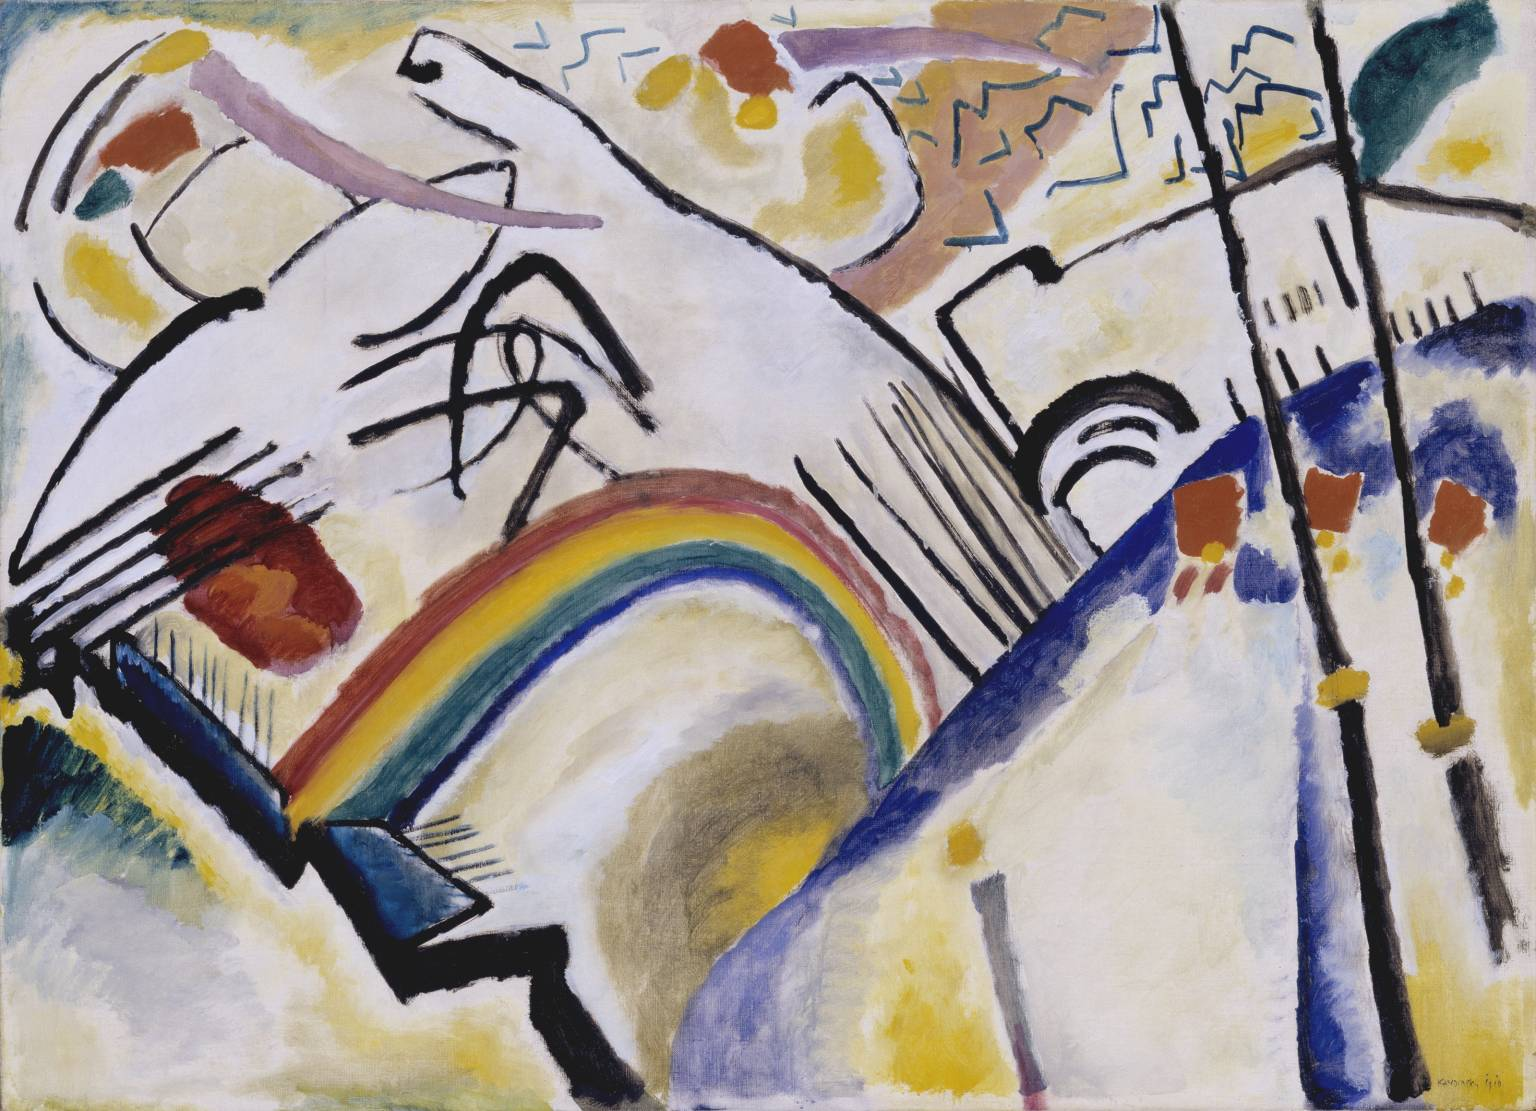 Cossacks 1910-11 by Wassily Kandinsky 1866-1944